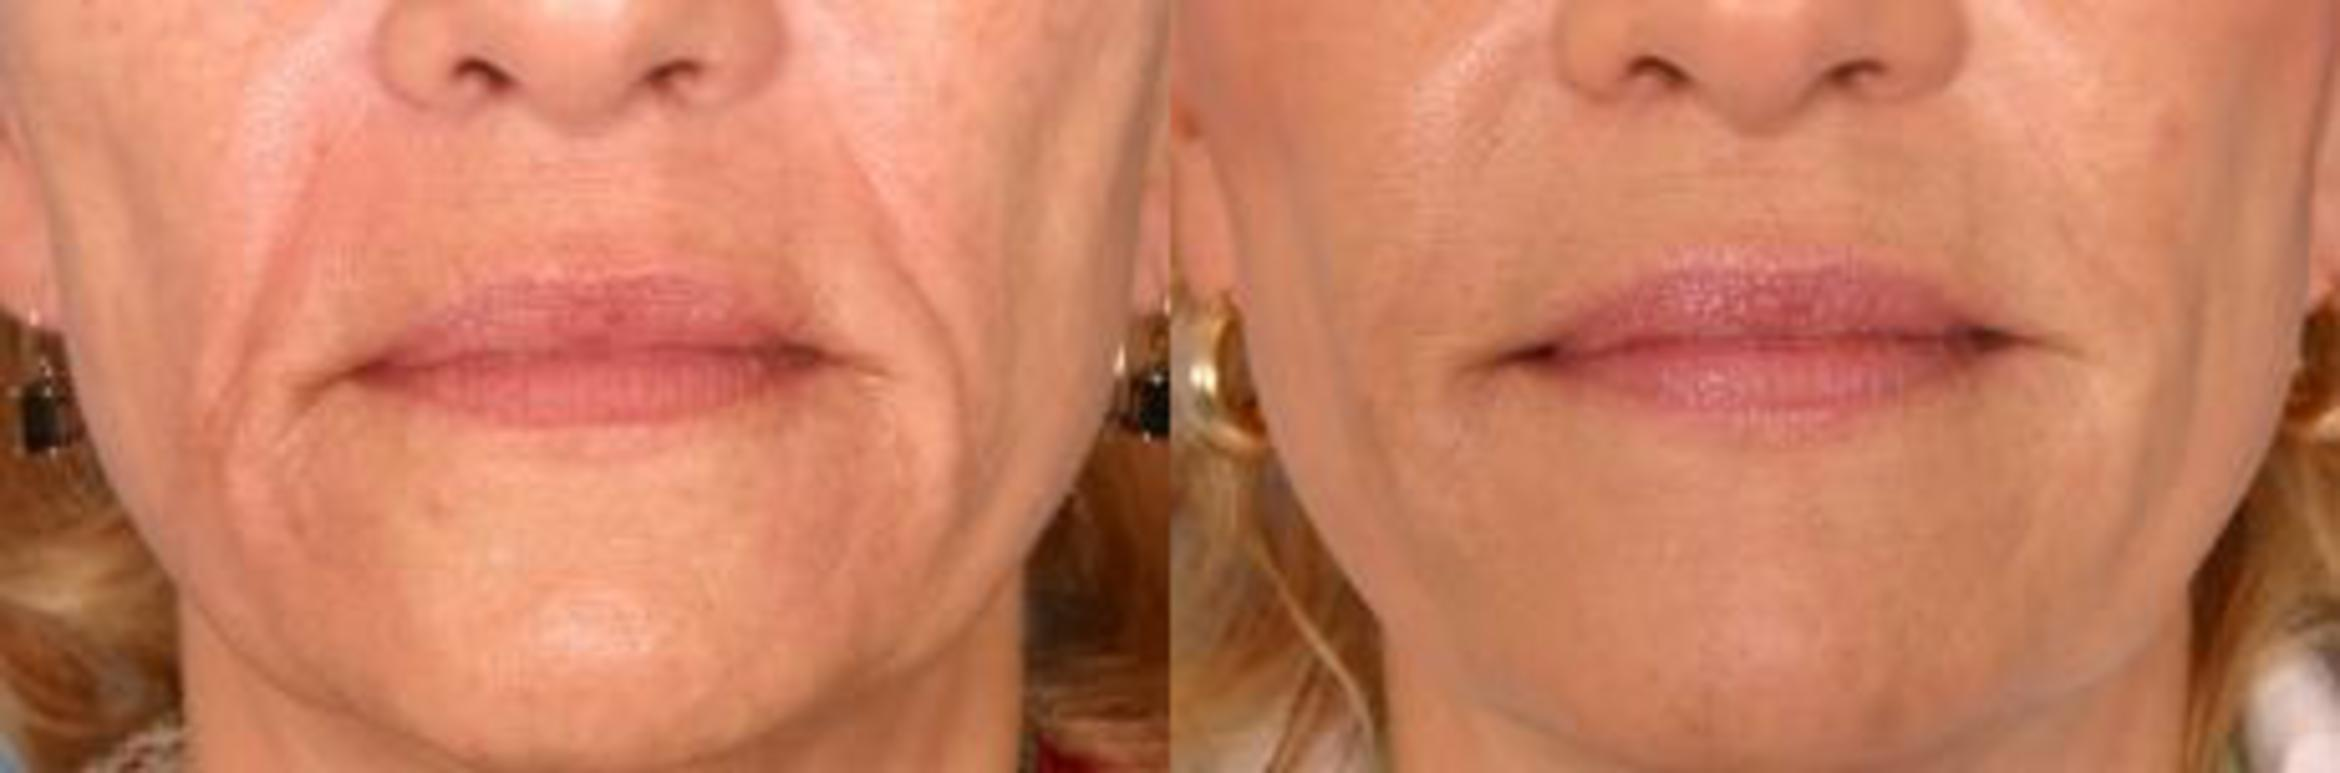 Restylane® Case 14 Before & After View #1 | Naples, FL | Kent V. Hasen, M.D.